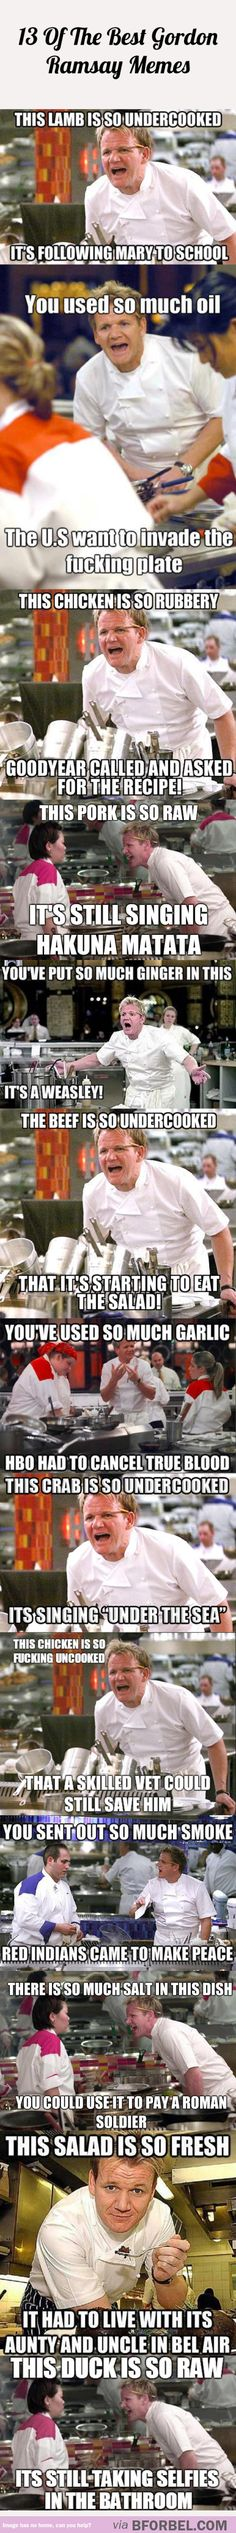 13 Of The Best Gordon Ramsay Memes…